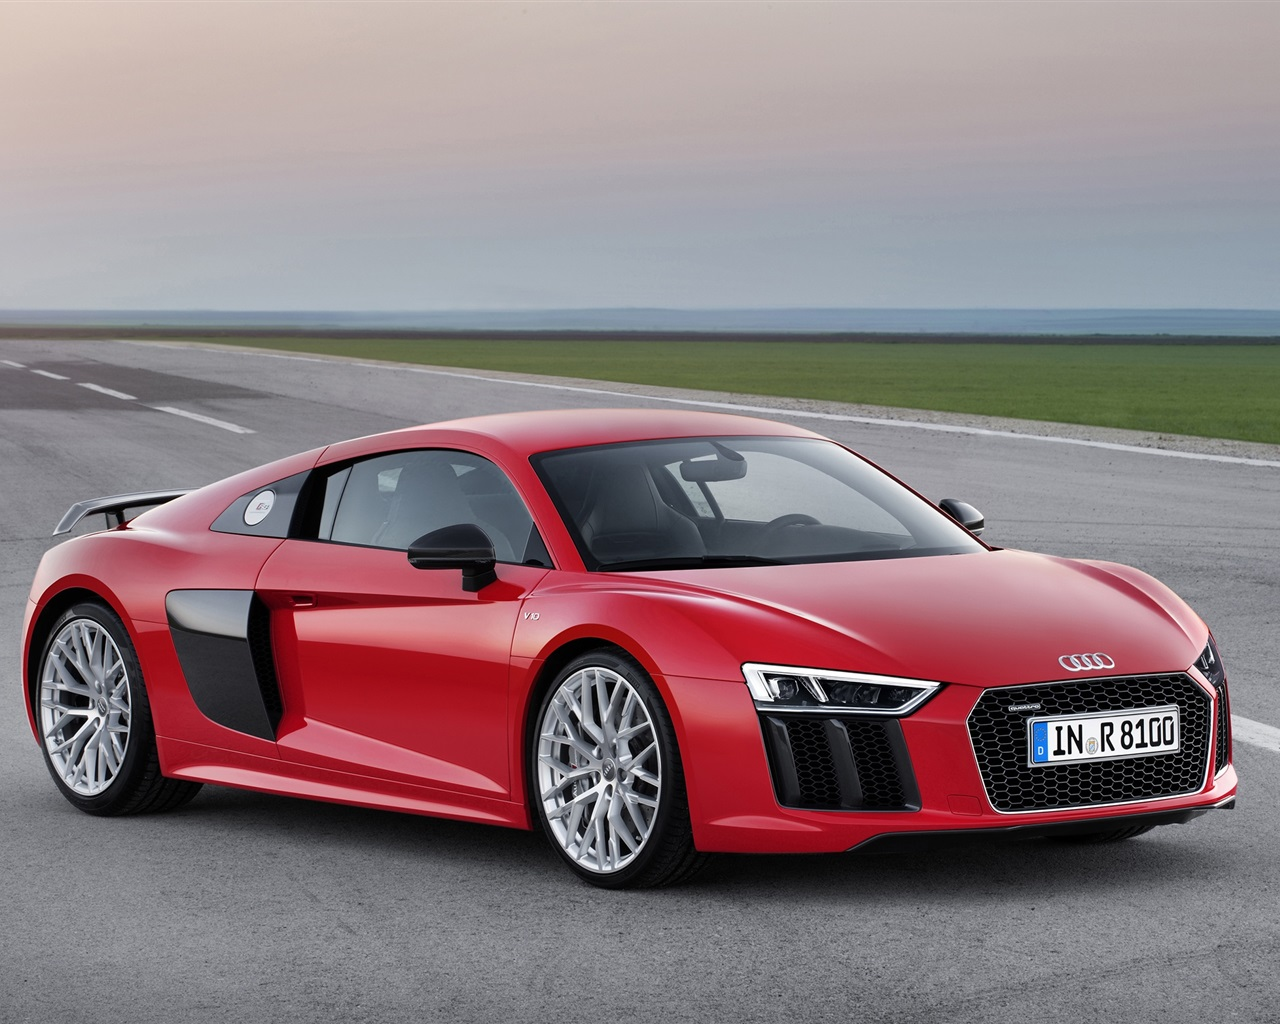 2015 Audi R8 Red Car Wallpaper 1280x1024 Resolution